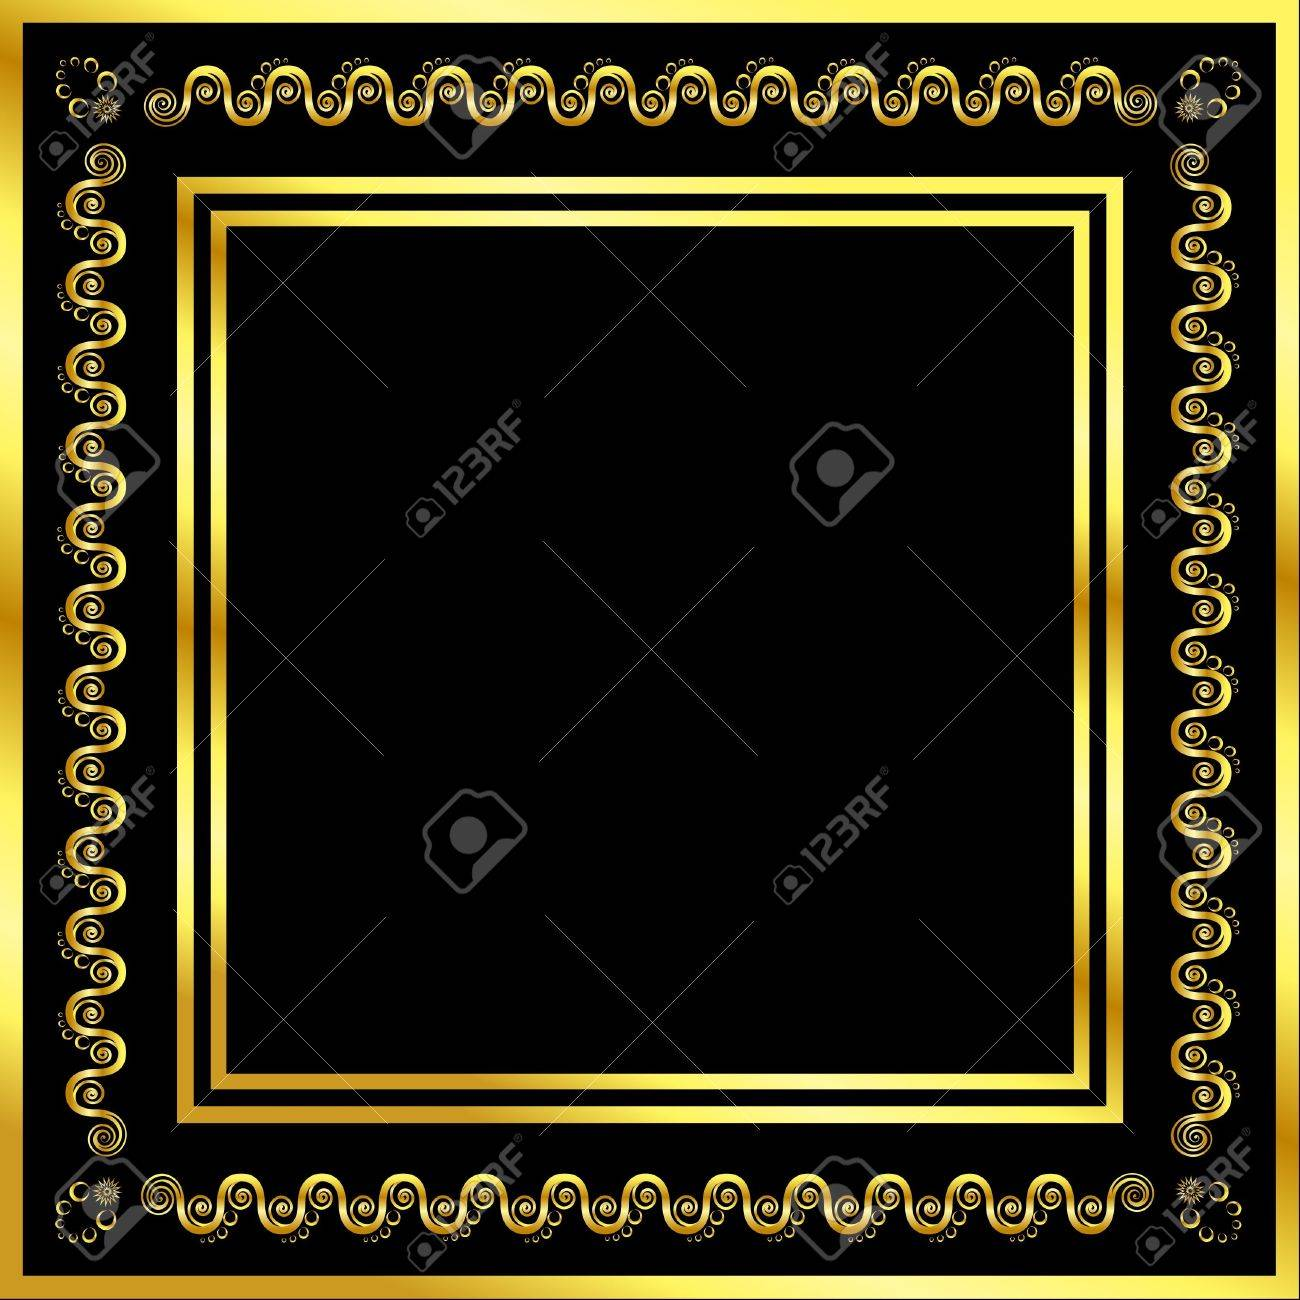 Gold pattern frame with waves and stars Stock Vector - 11131173